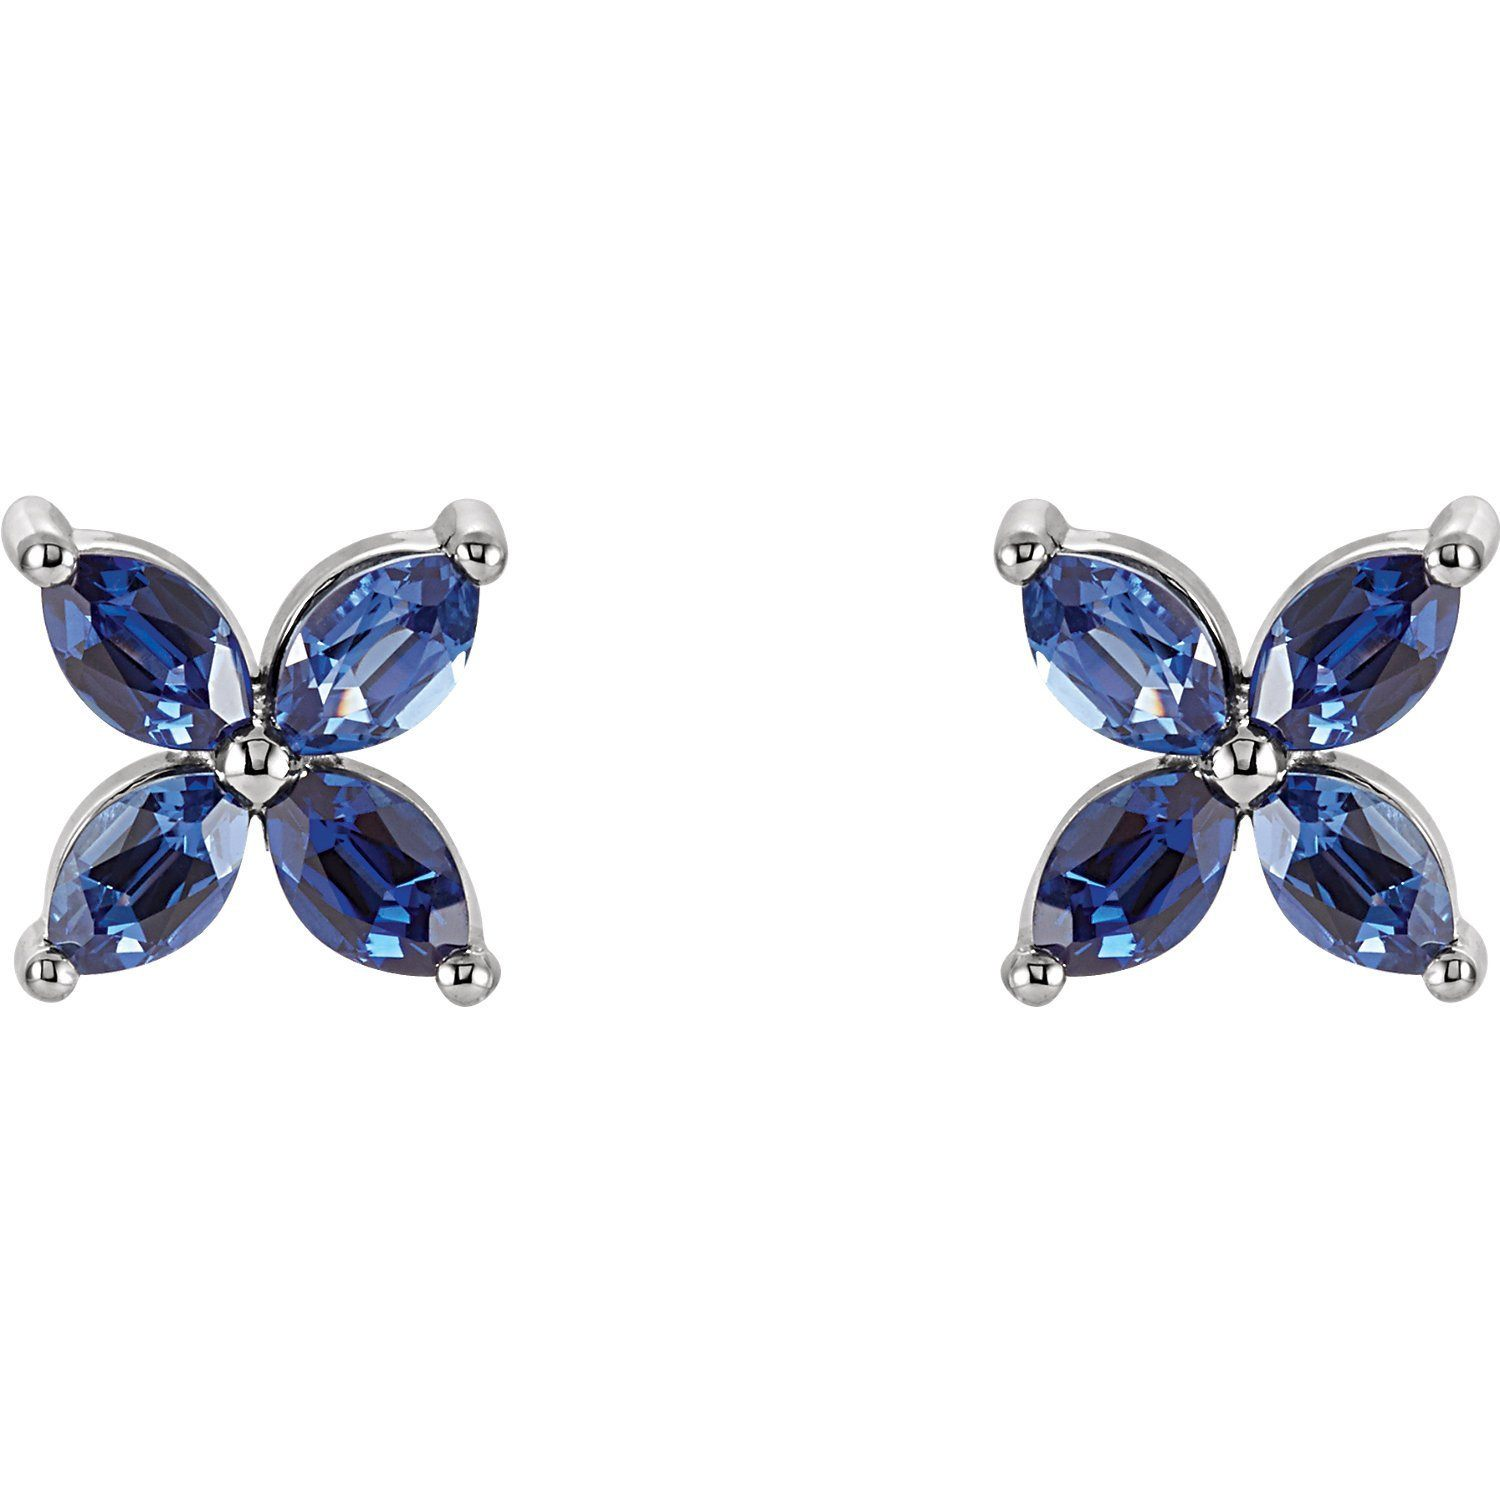 Flower-Shaped Grown Gemstone Earrings